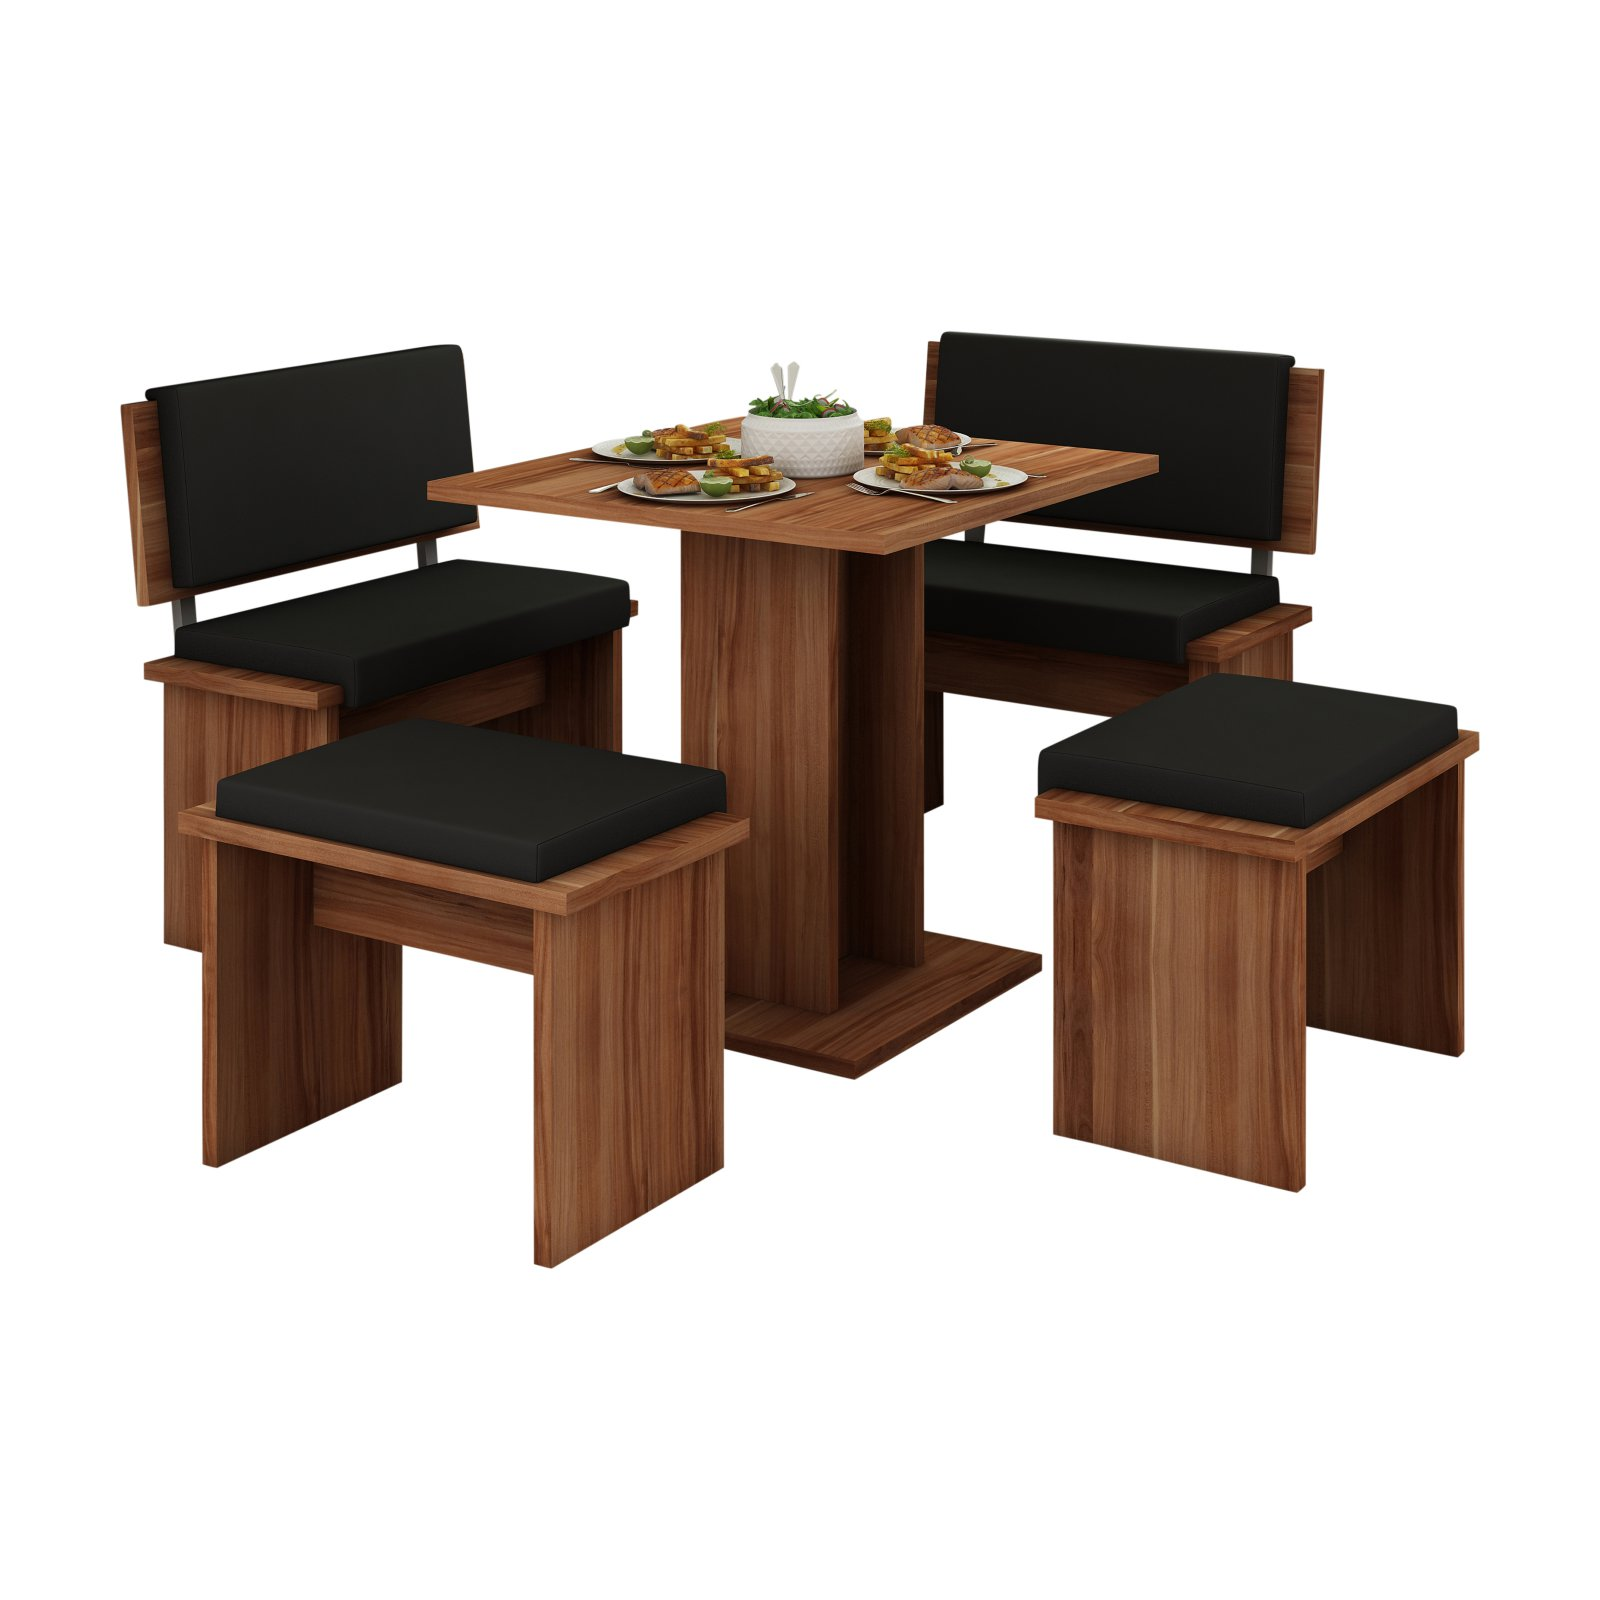 Furniture.Agency Bond 5 Piece Dining Table Set